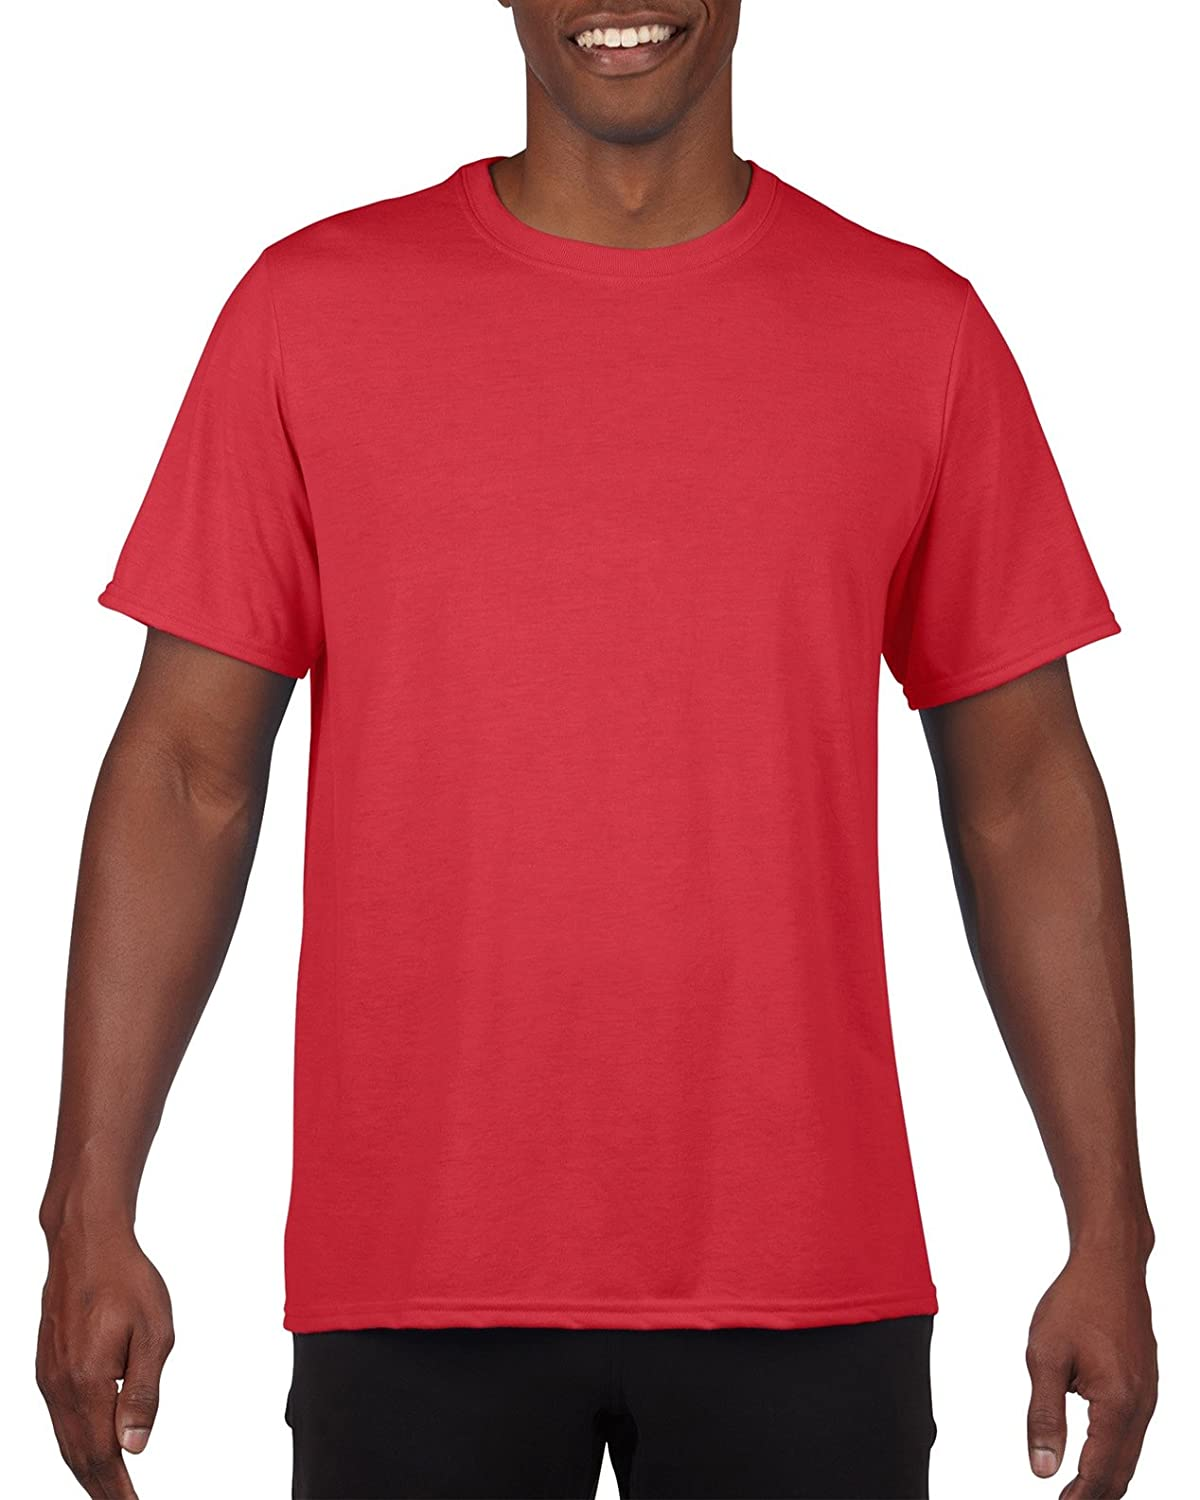 Gildan Men's 100% Polyester Moisture Wicking Performance T-Shirt Gildan Men's Activewear G42000